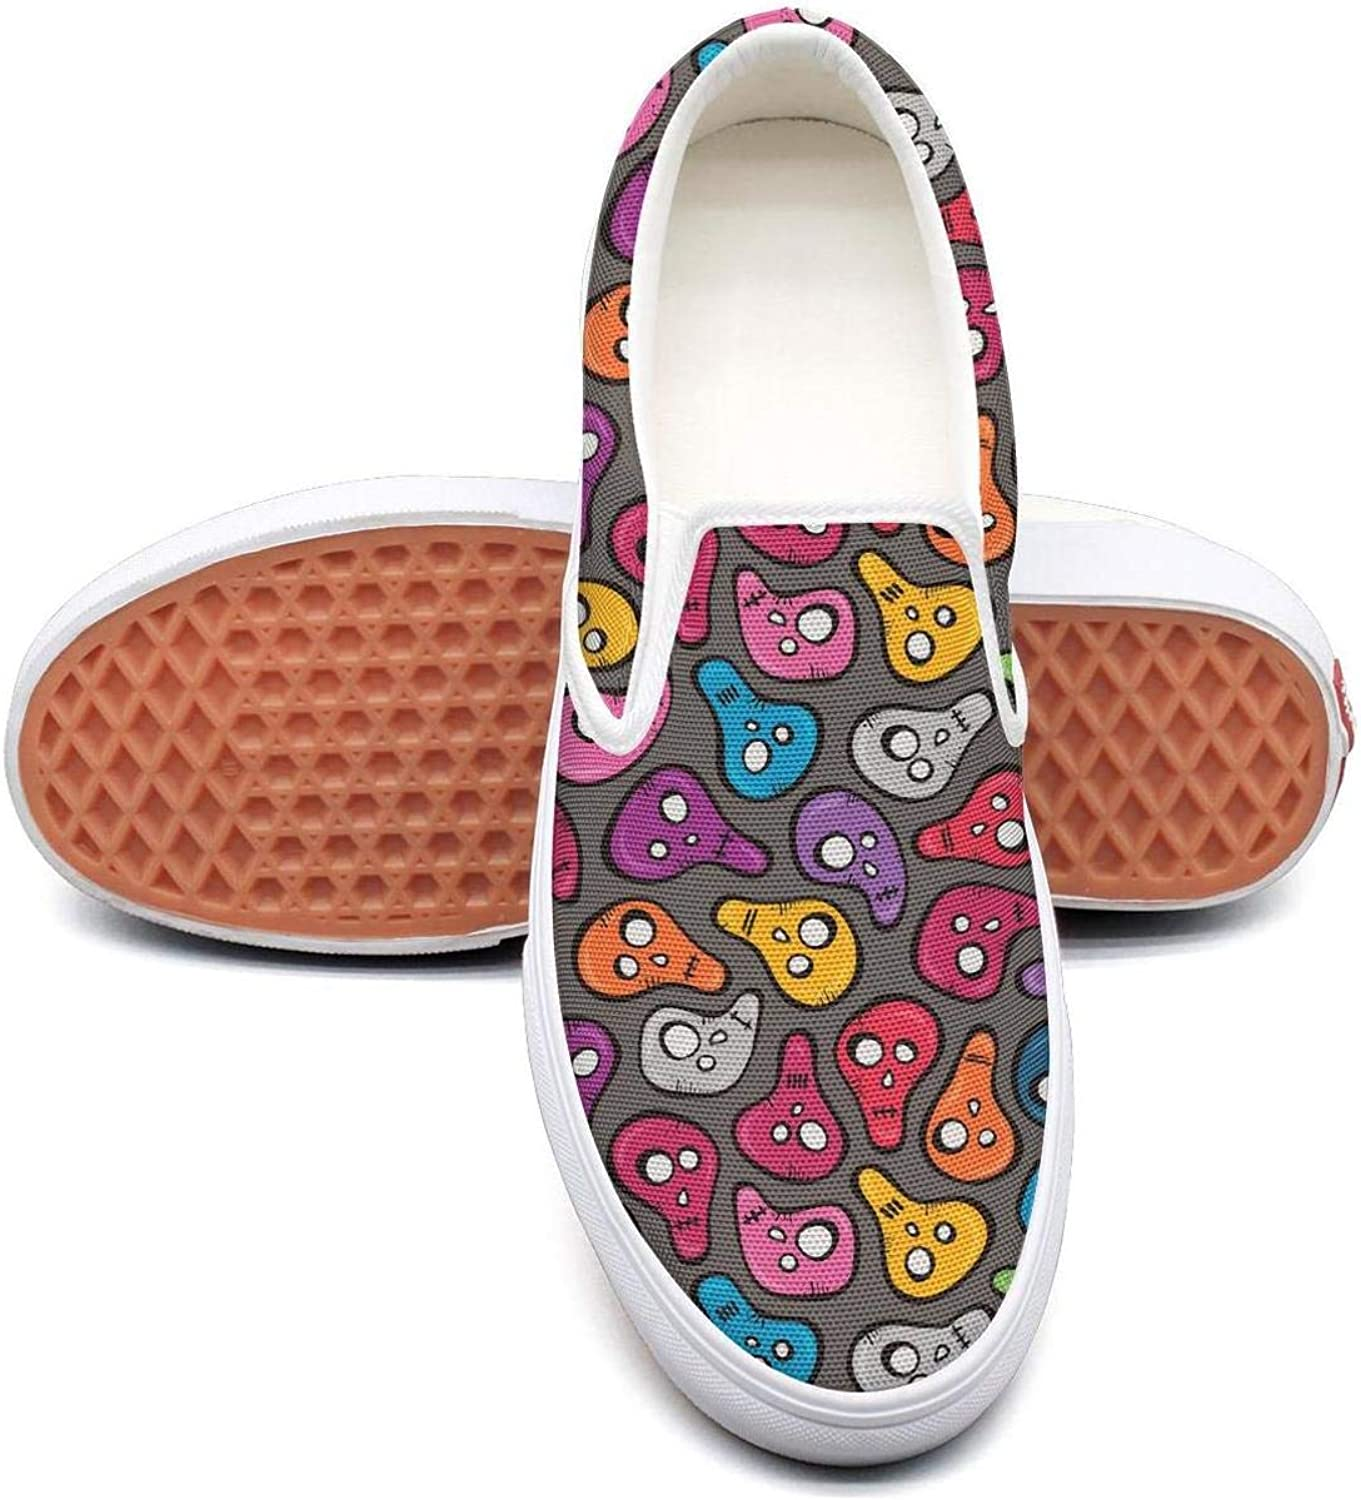 colorful A Skull Skeletons Slip On Rubber Sole Sneakers Canvas shoes for Women Fashion